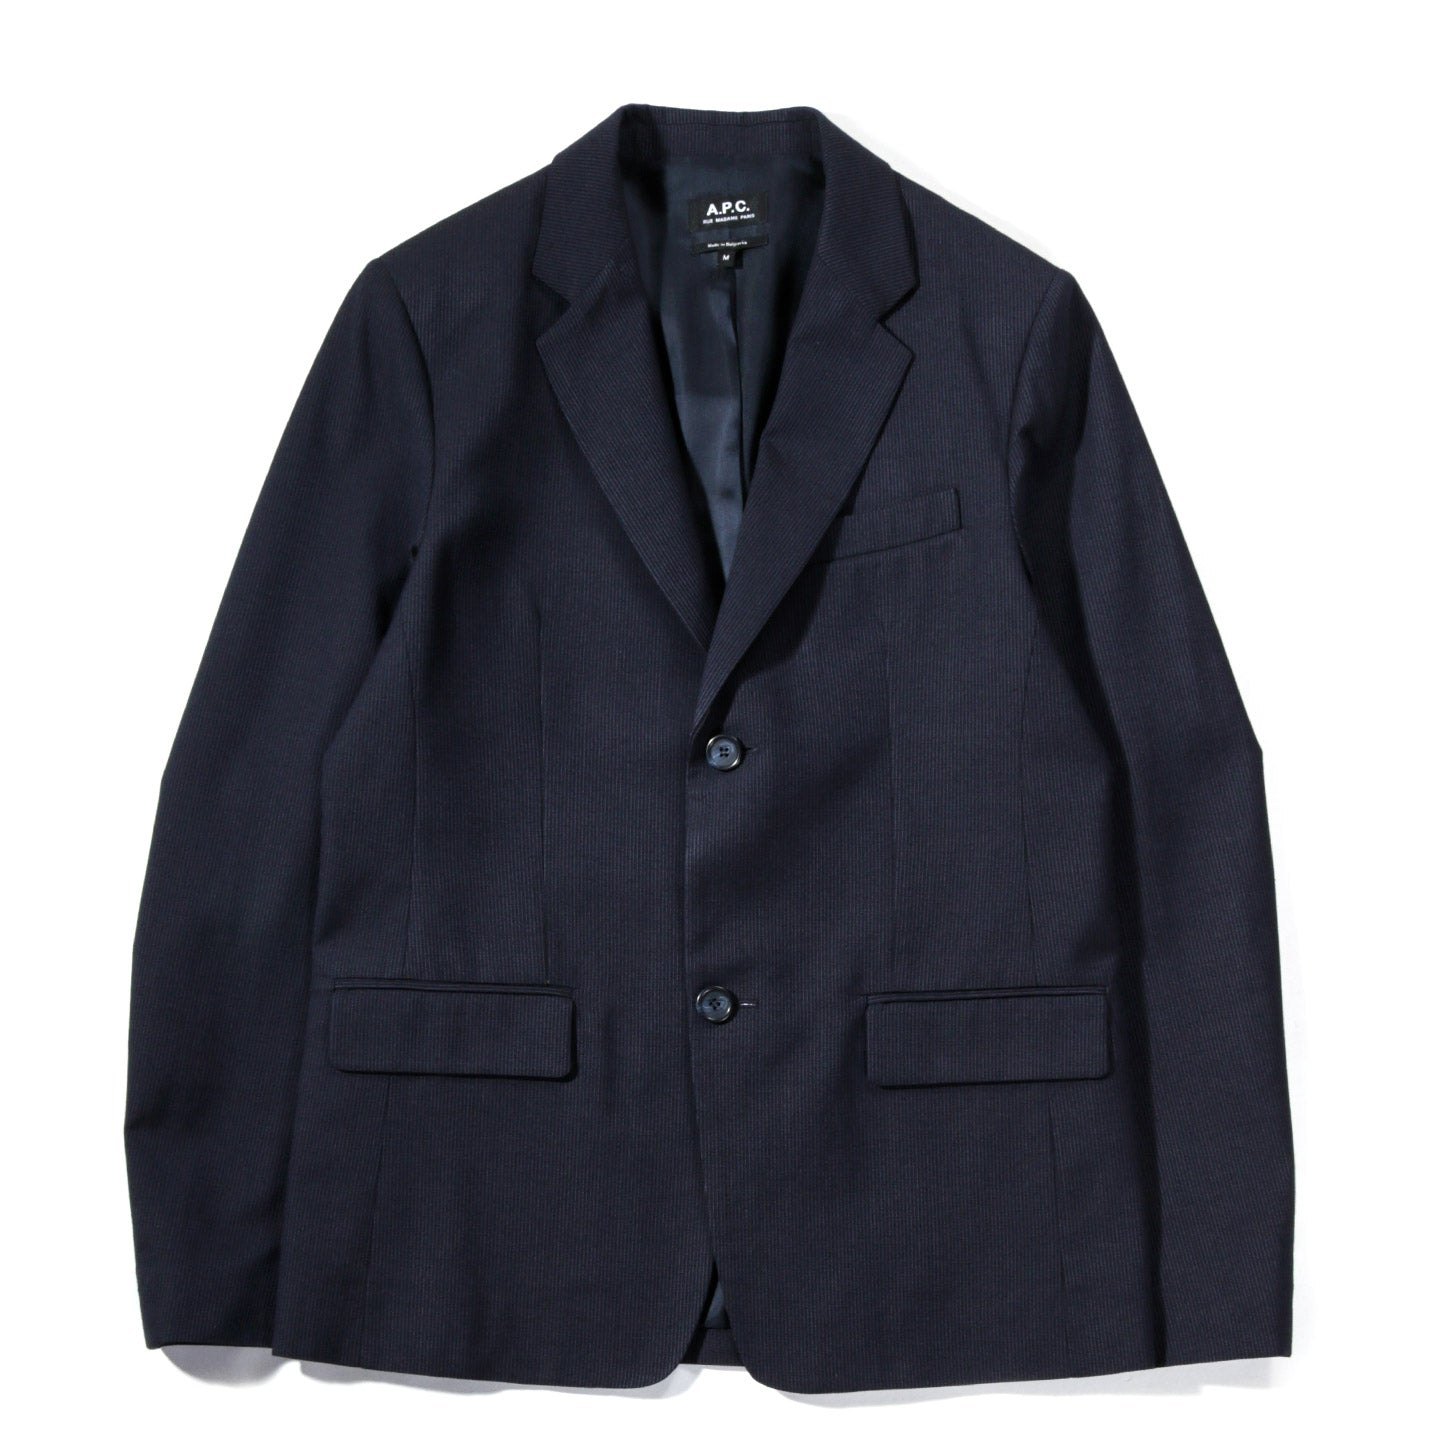 A.P.C. TRUMAN JACKET DARK NAVY